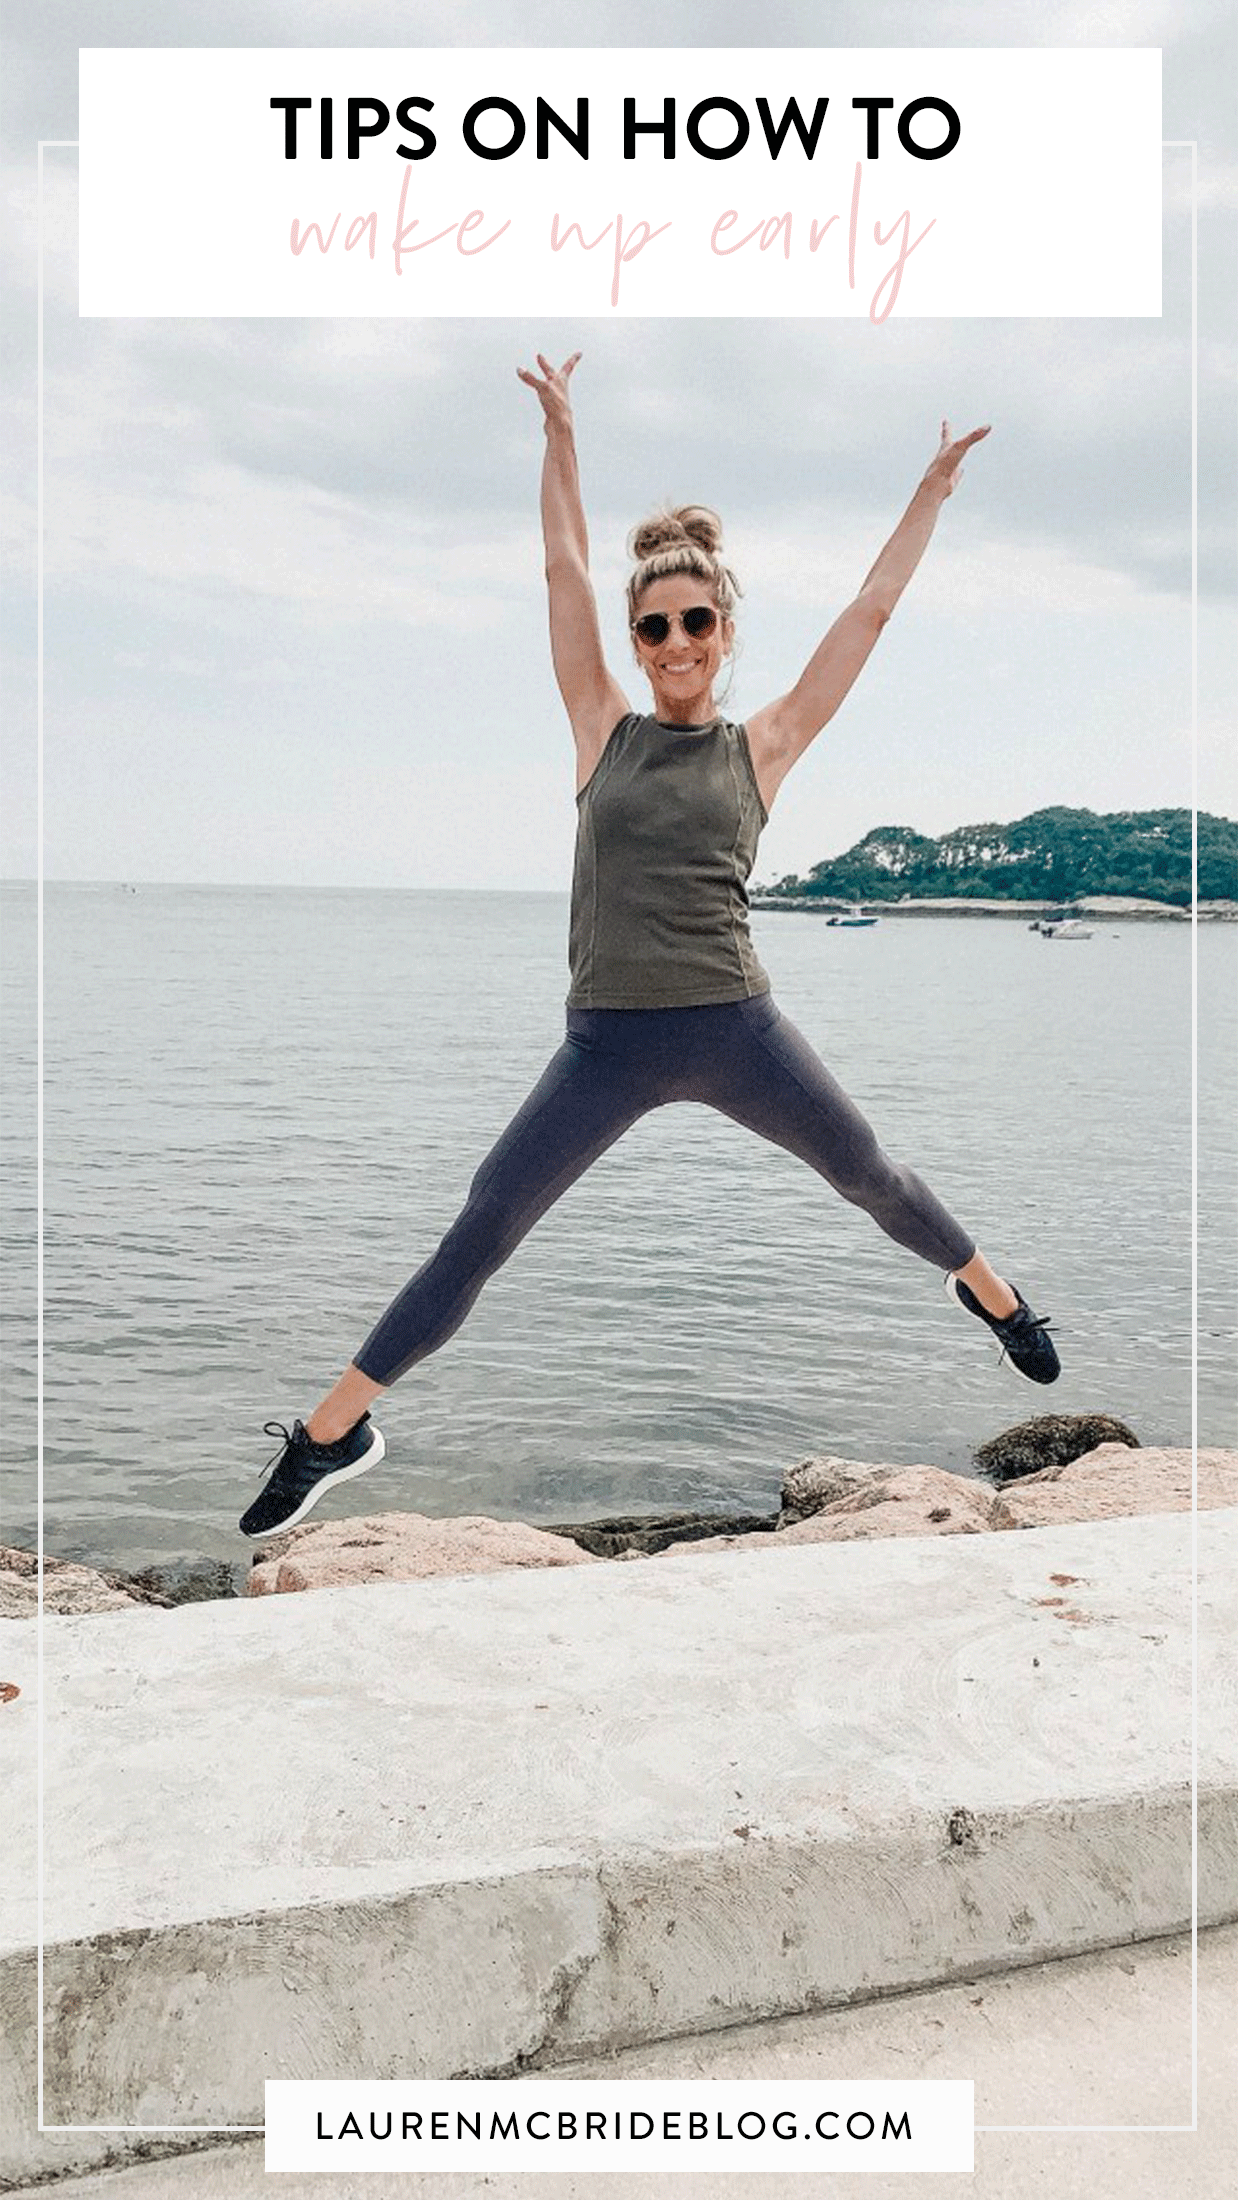 Let's be honest, waking up early can be HARD! Connecticut Lifestyle blogger Lauren McBride is sharing her top tips to waking up early and getting productive. See them HERE!